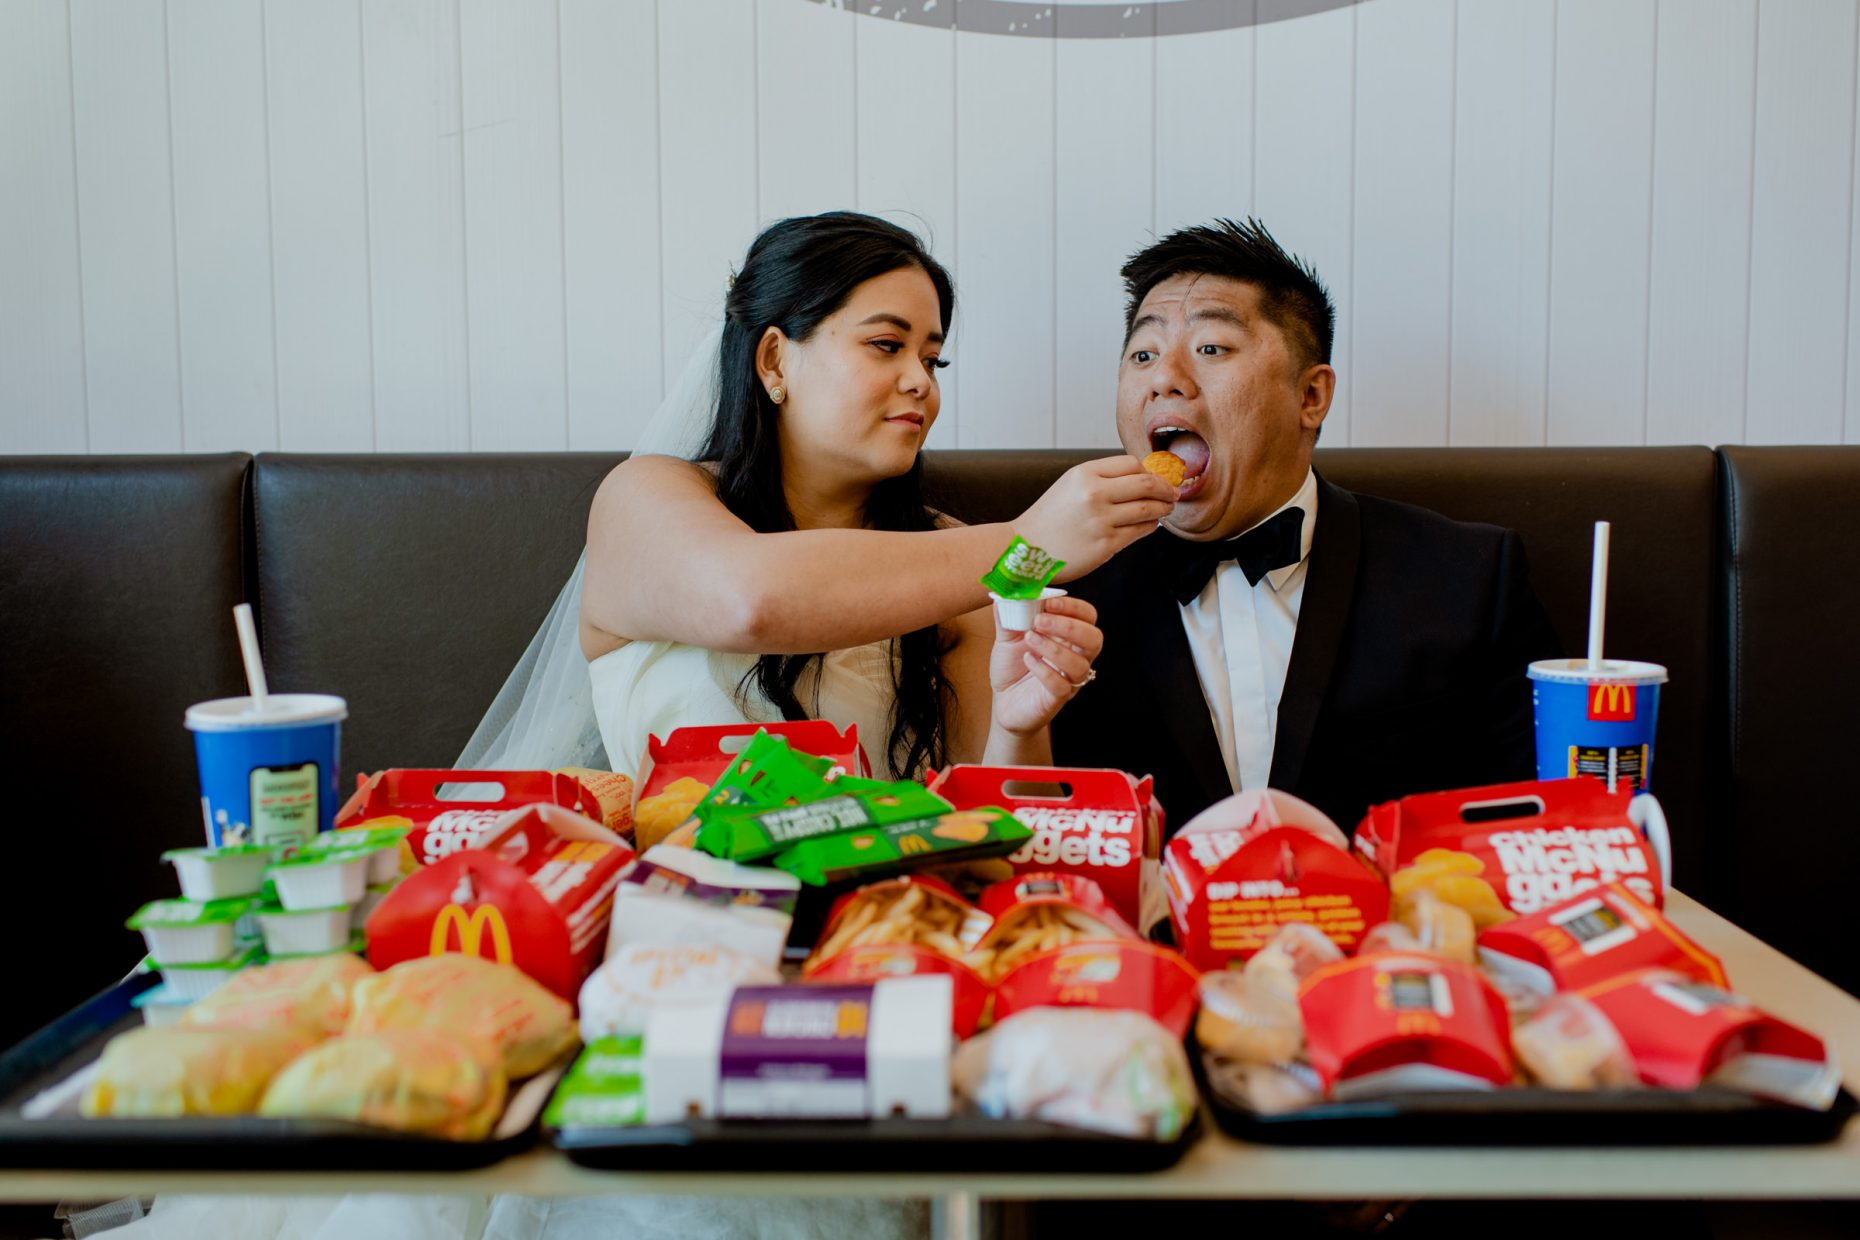 A bride feeds her groom a nugget next to a table filled with fast food